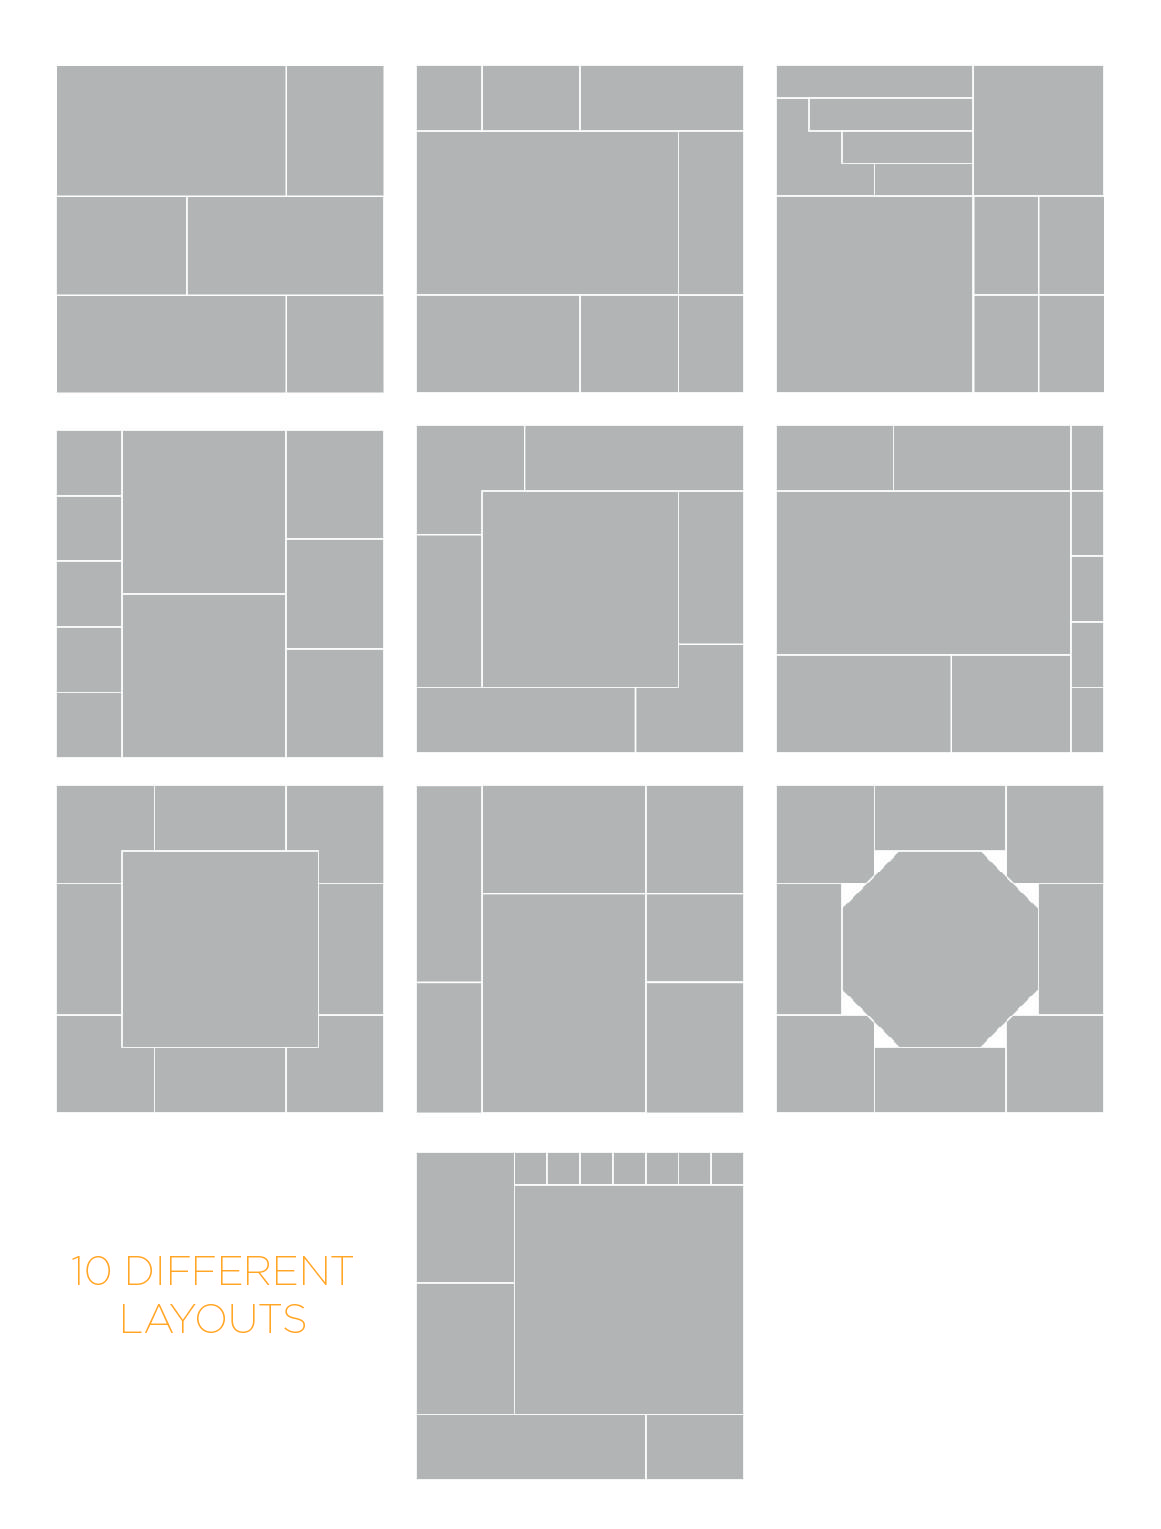 10 Mood Board Photo Collage Layouts By Modern Design Elements On